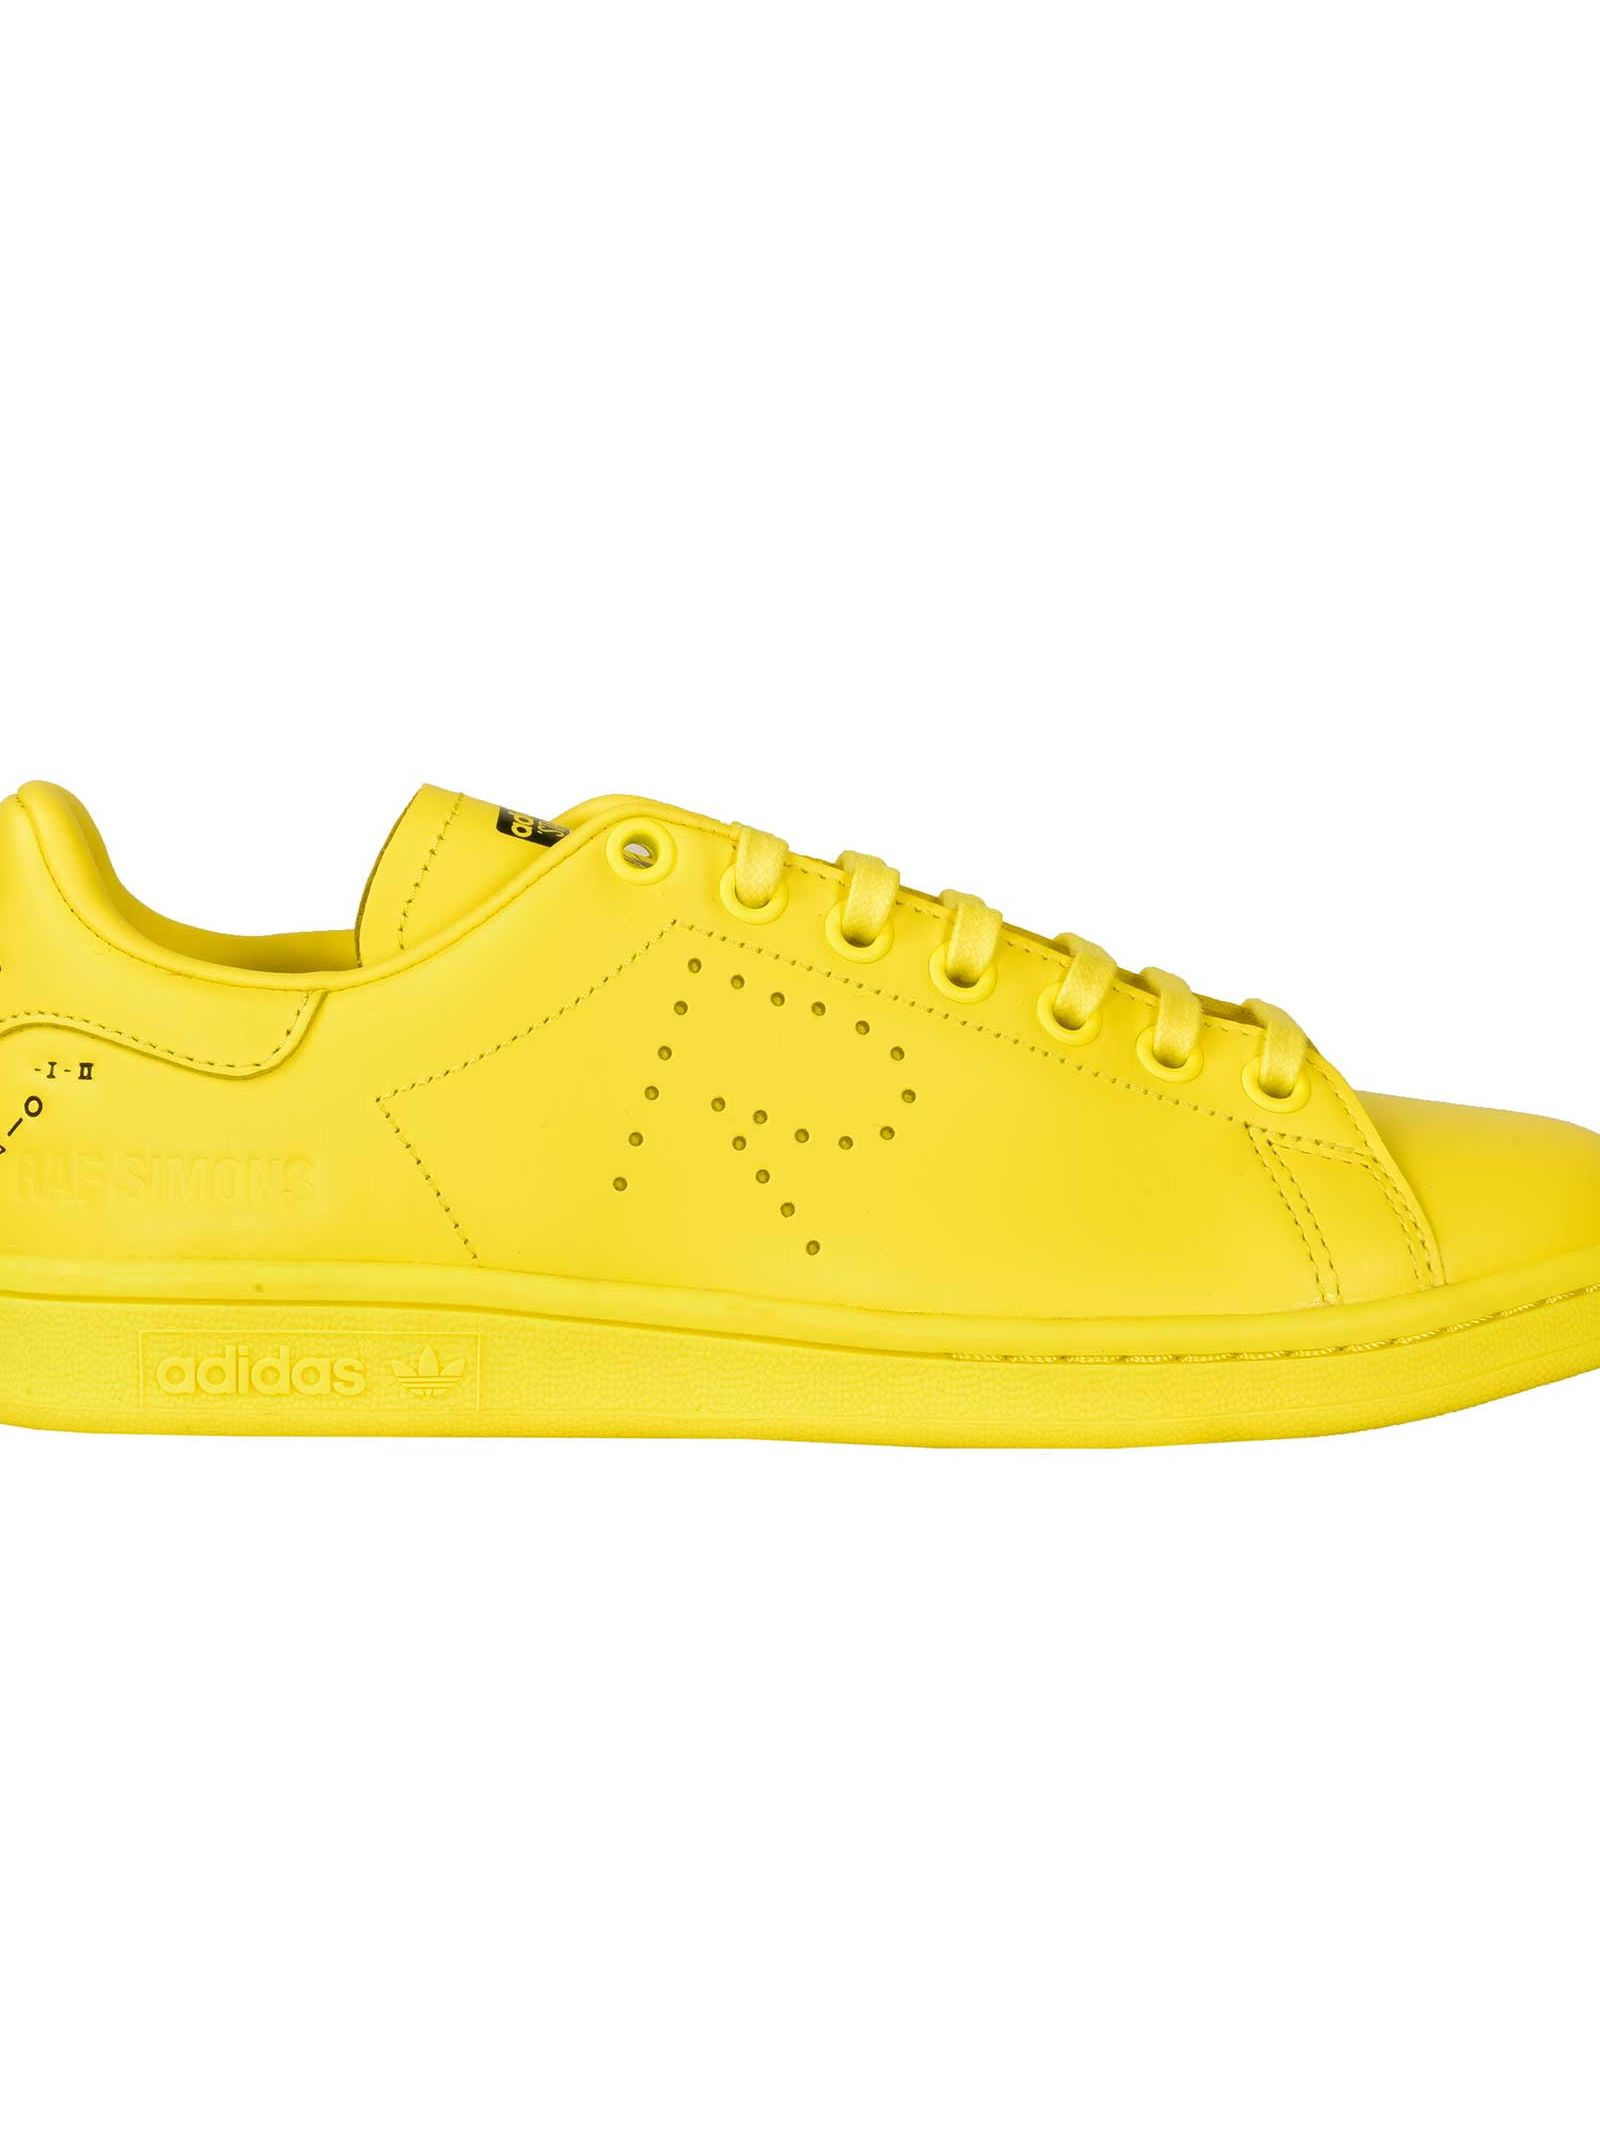 Rs Stan Smith Sneakers in Byello/Puryel/Ftwwht